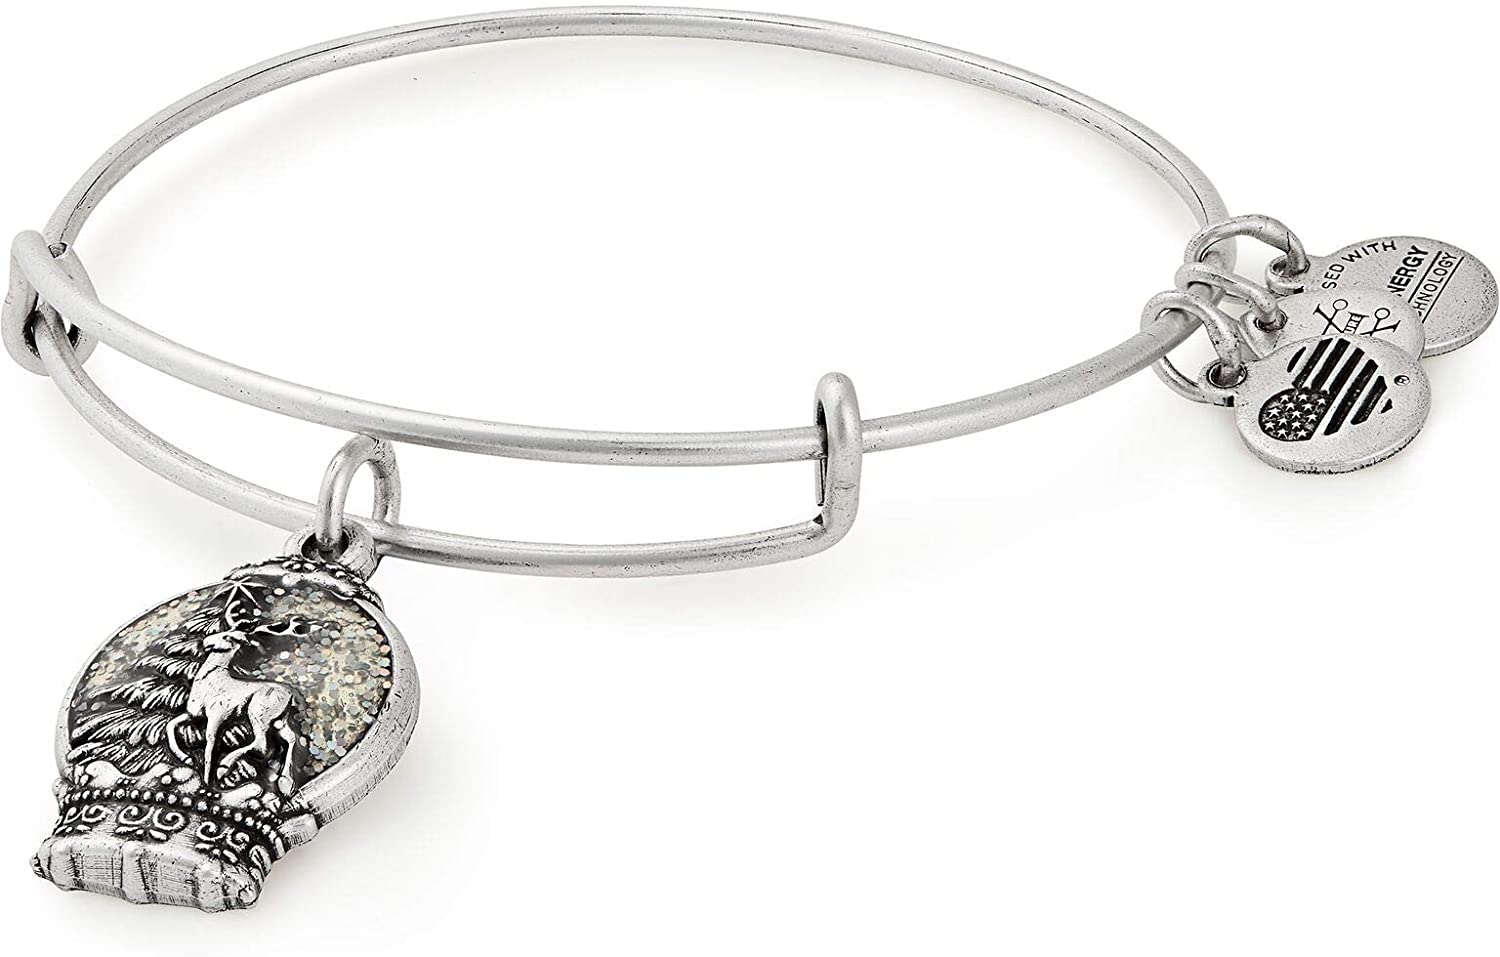 Alex and Ani Black Friday Snow Globe Charm Bangle Bracelet - Rafaelian Silver Finish